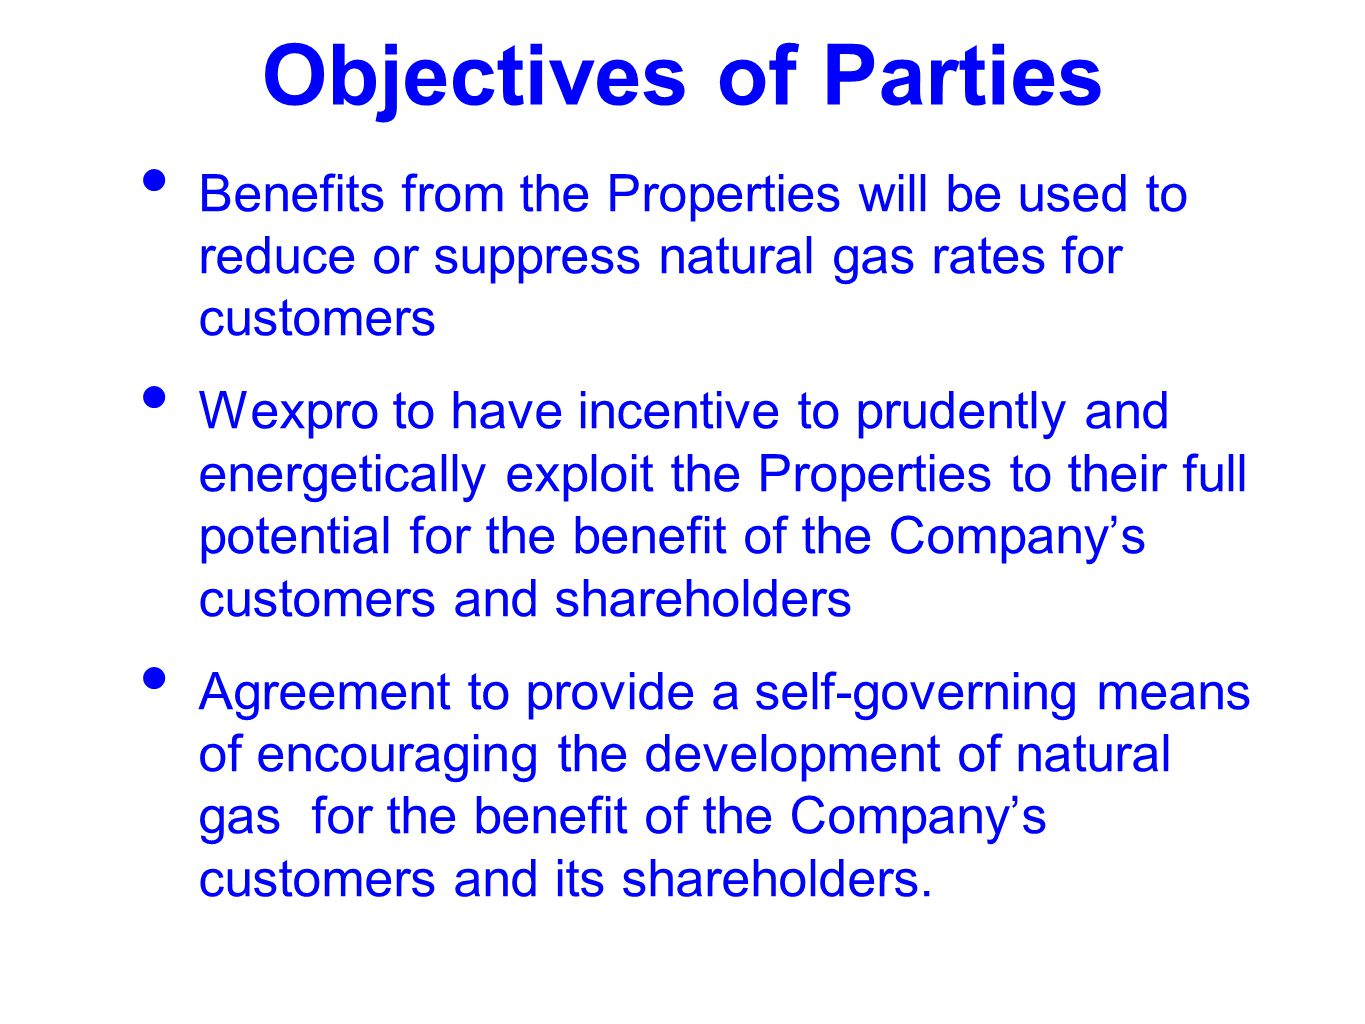 Objectives of Parties Benefits from the Properties will be used to reduce or suppress natural gas rates for customers Wexpro to have incentive to prudently and energetically exploit the Properties to their full potential for the benefit of the Company's customers and shareholders Agreement to provide a self-governing means of encouraging the development of natural gas for the benefit of the Company's customers and its shareholders.